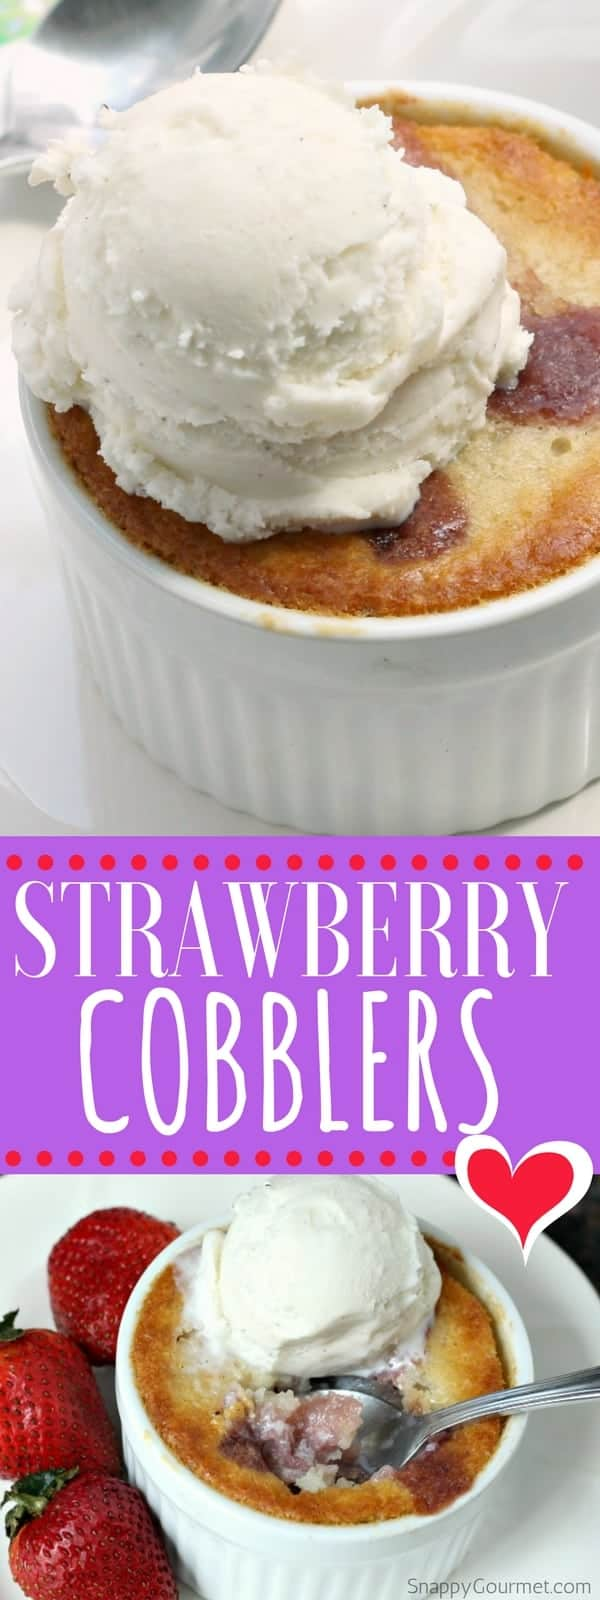 Strawberry Cobbler Recipe - individual easy strawberry cobblers with fresh strawberries baked in ramekins. Simple dessert idea!